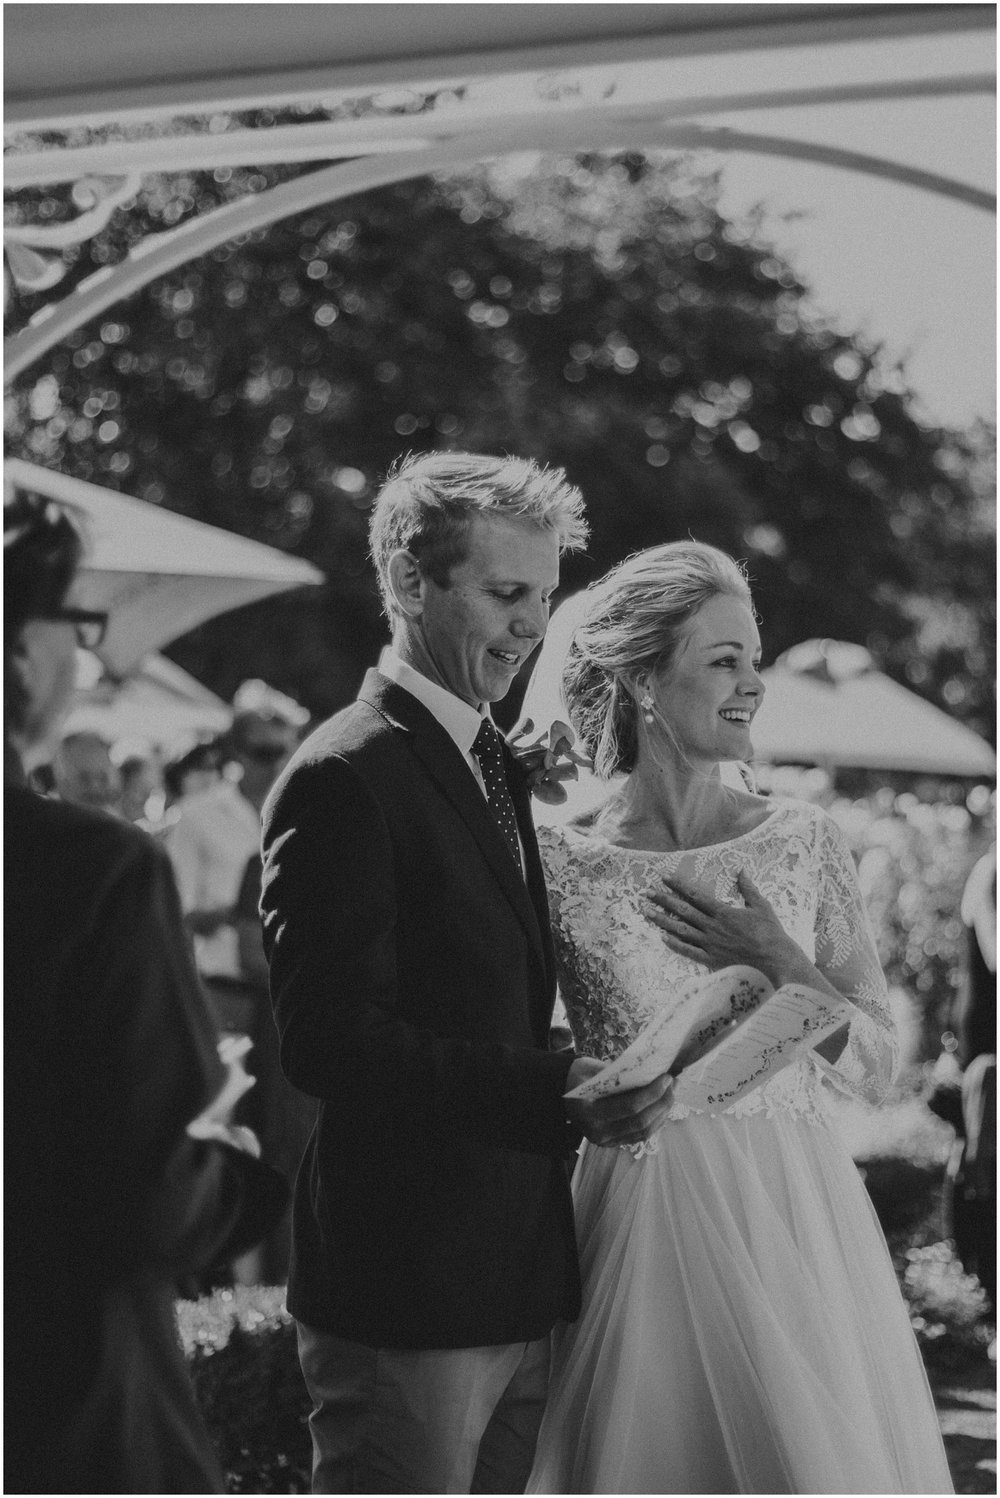 Top Wedding Photographer Cape Town South Africa Artistic Creative Documentary Wedding Photography Rue Kruger_0695.jpg